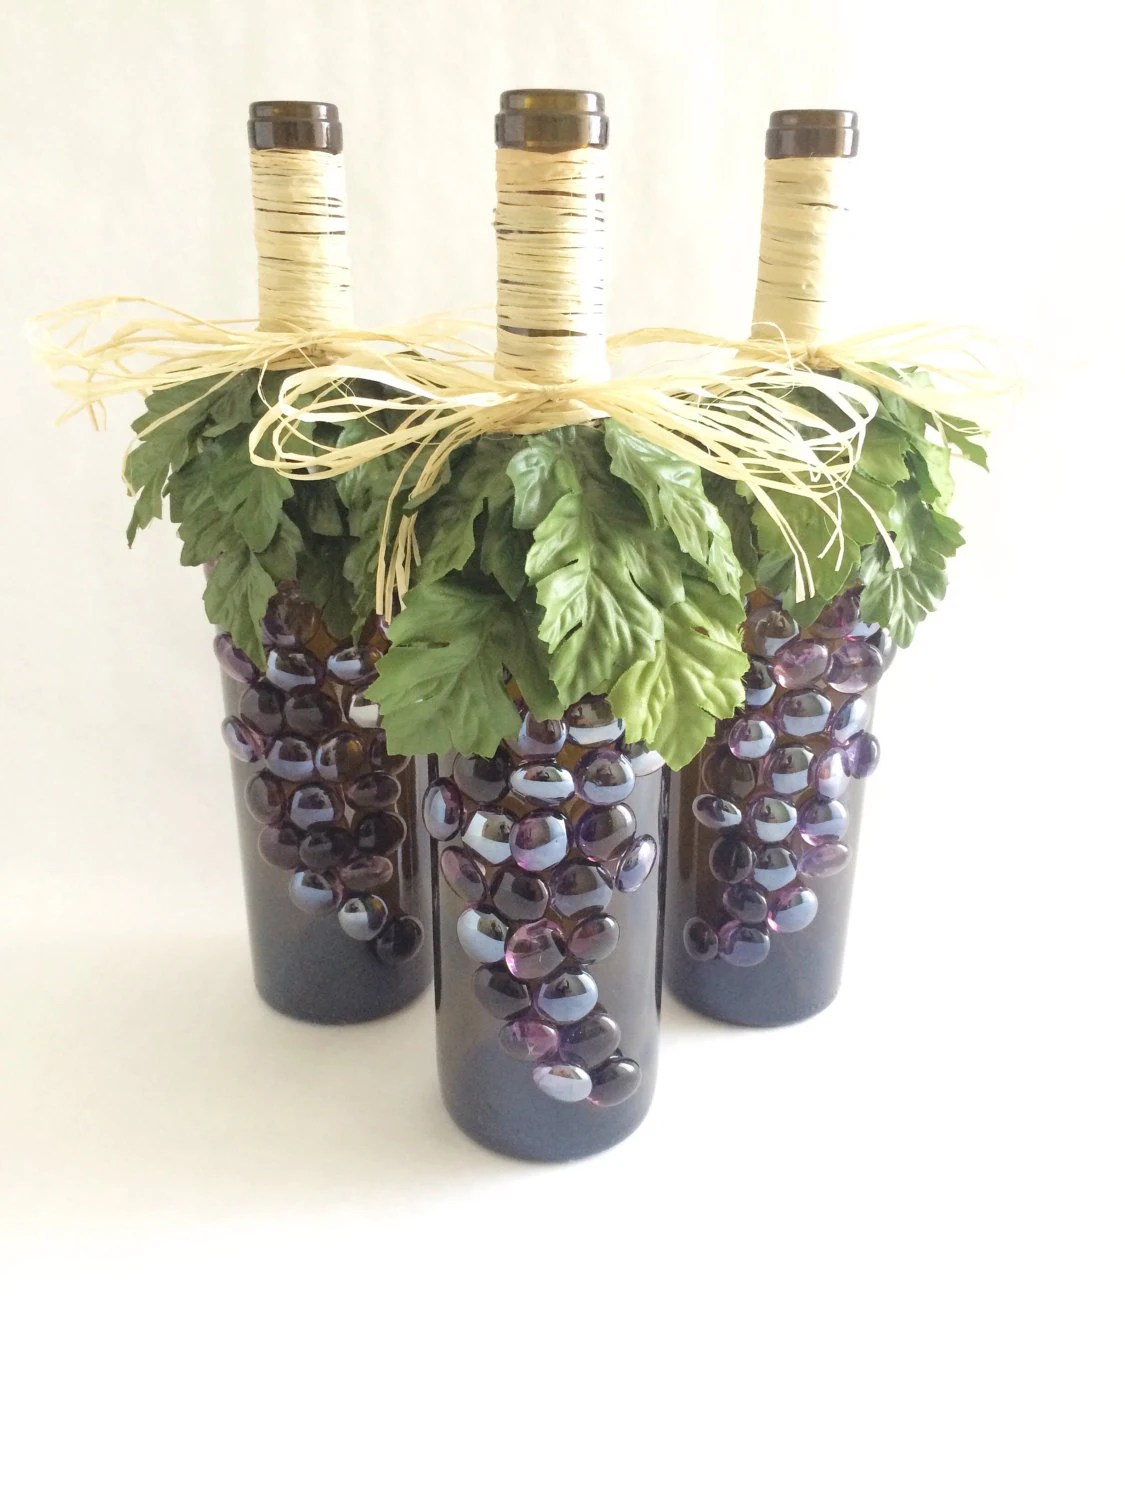 grapes and wine kitchen decor microwave cabinet decoration: set of 3 bottles with artificial